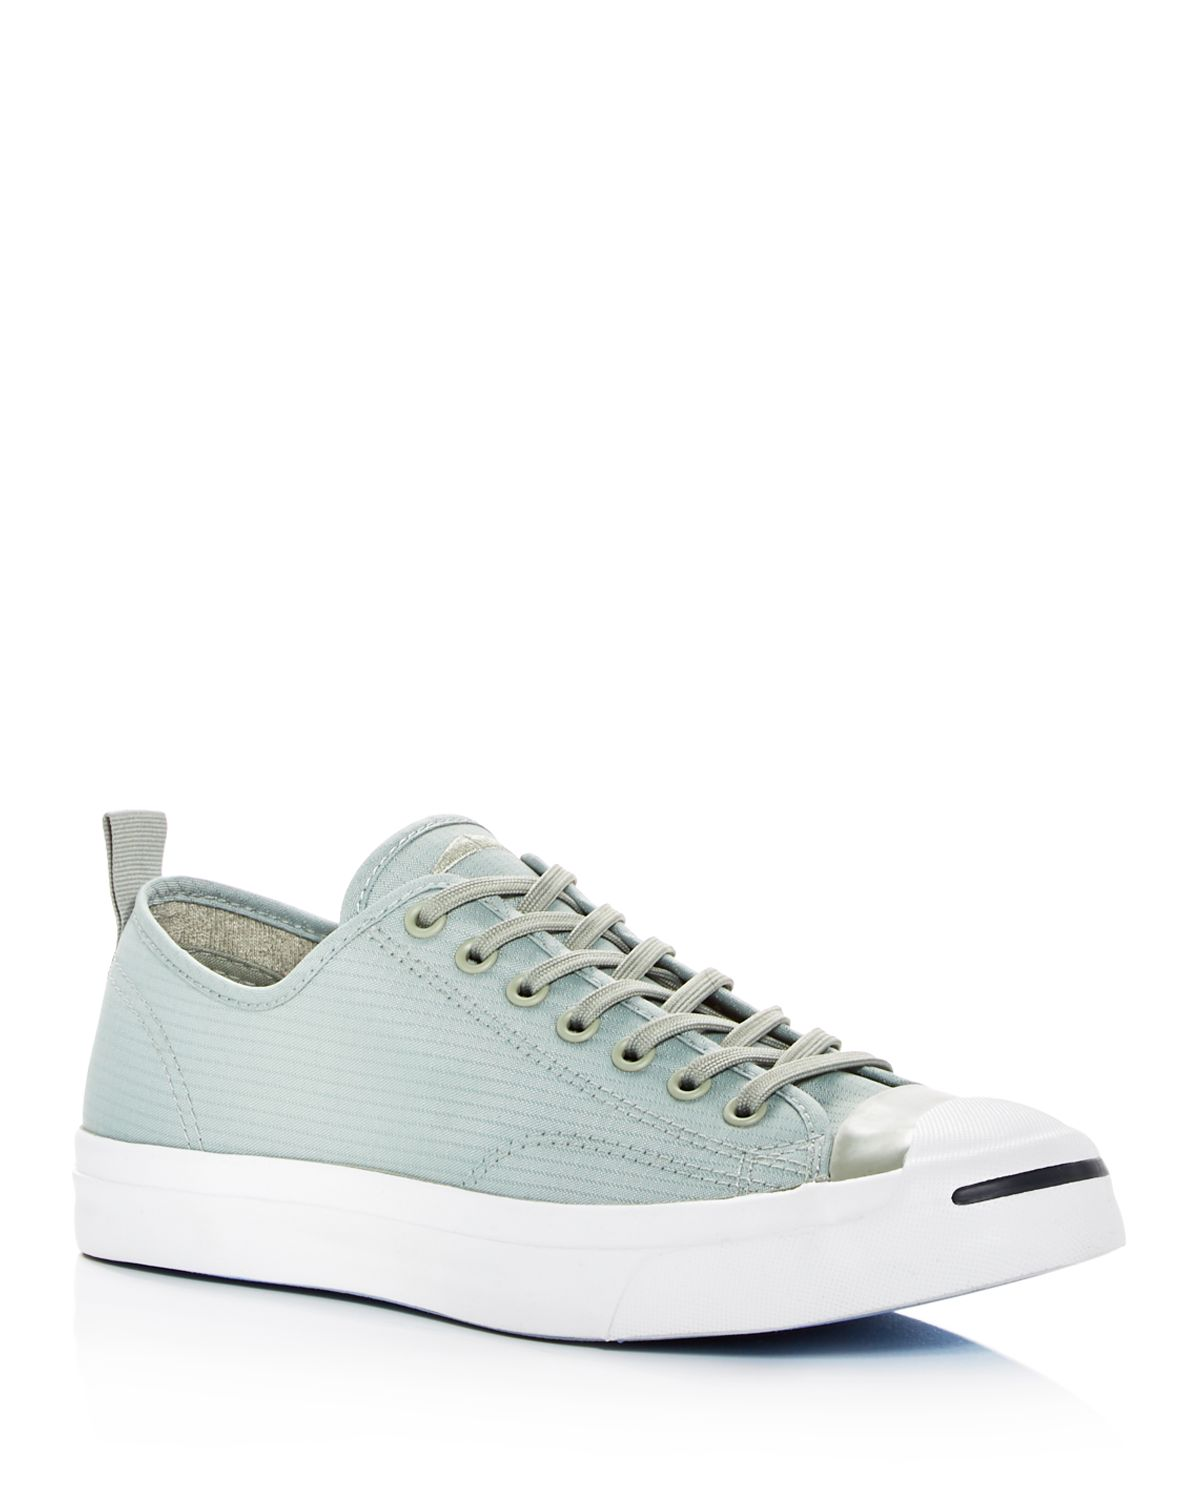 Converse Men's Jack Purcell Surplus Lace up Sneakers